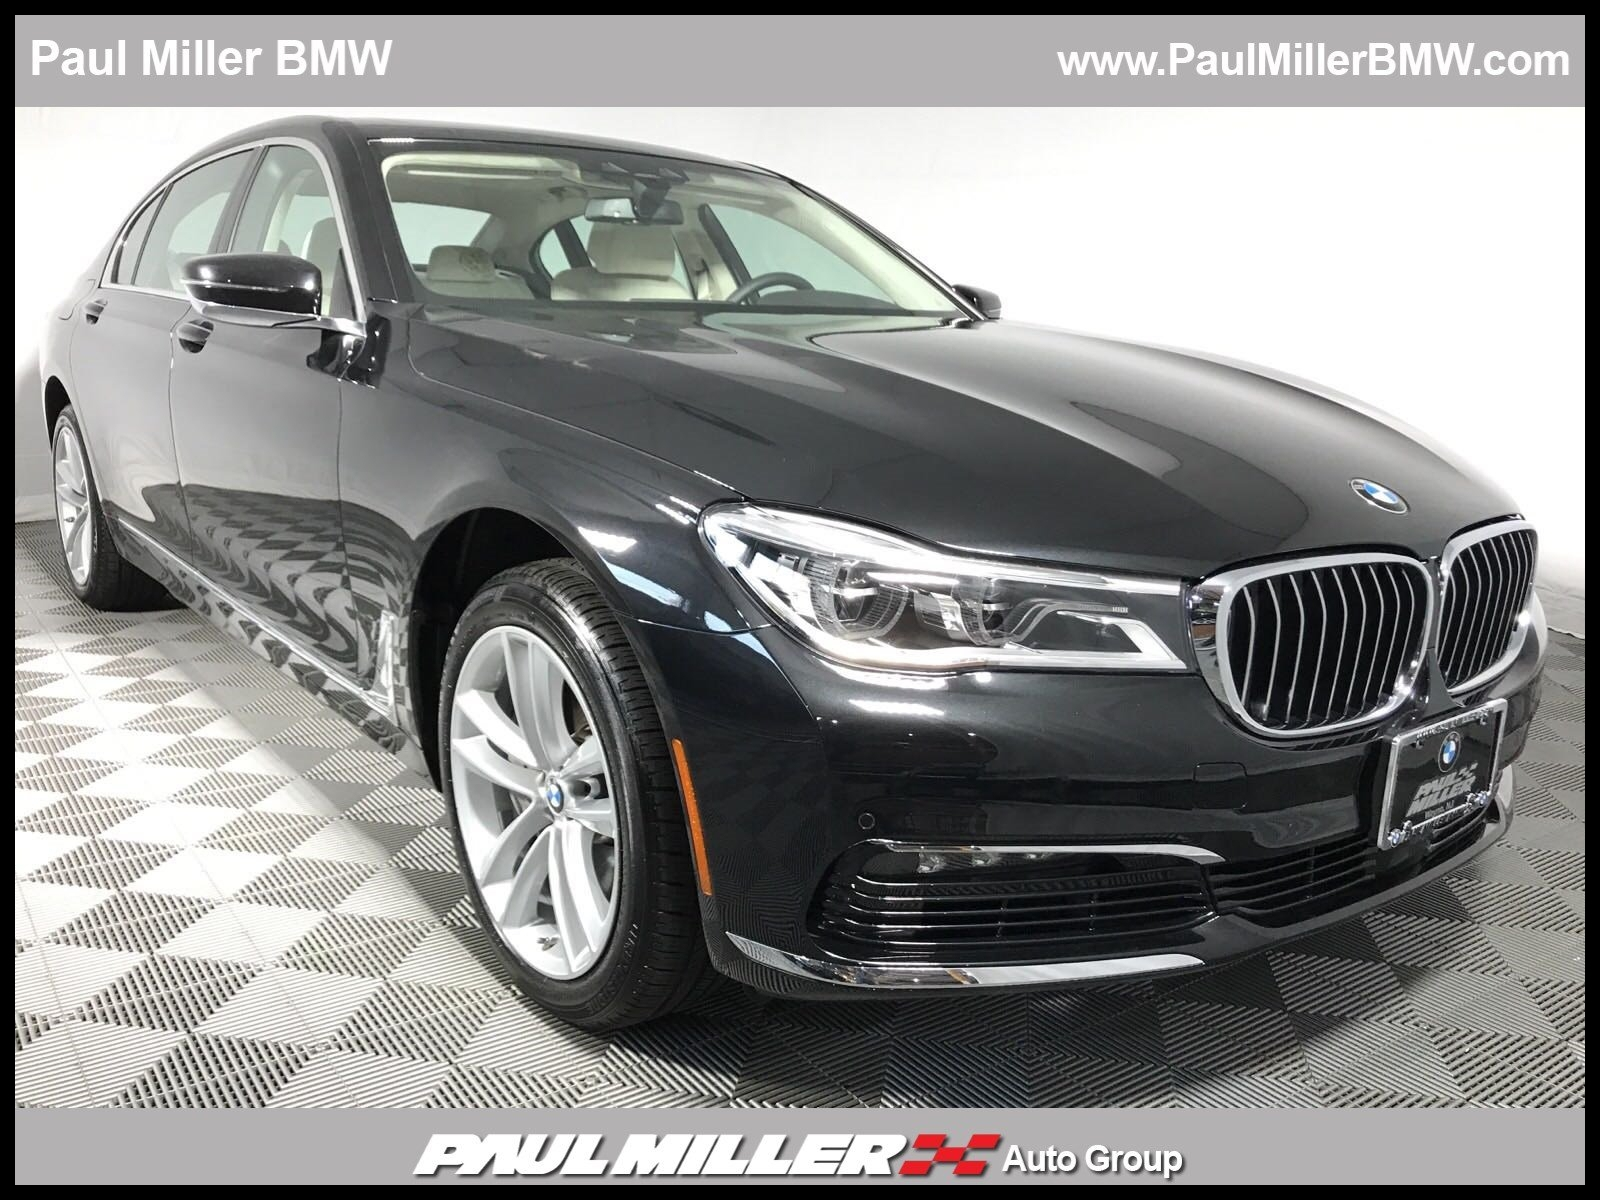 Bmw Pre Owned Lease Certified Pre Owned 2018 Bmw 7 Series 4dr Car In Wayne L